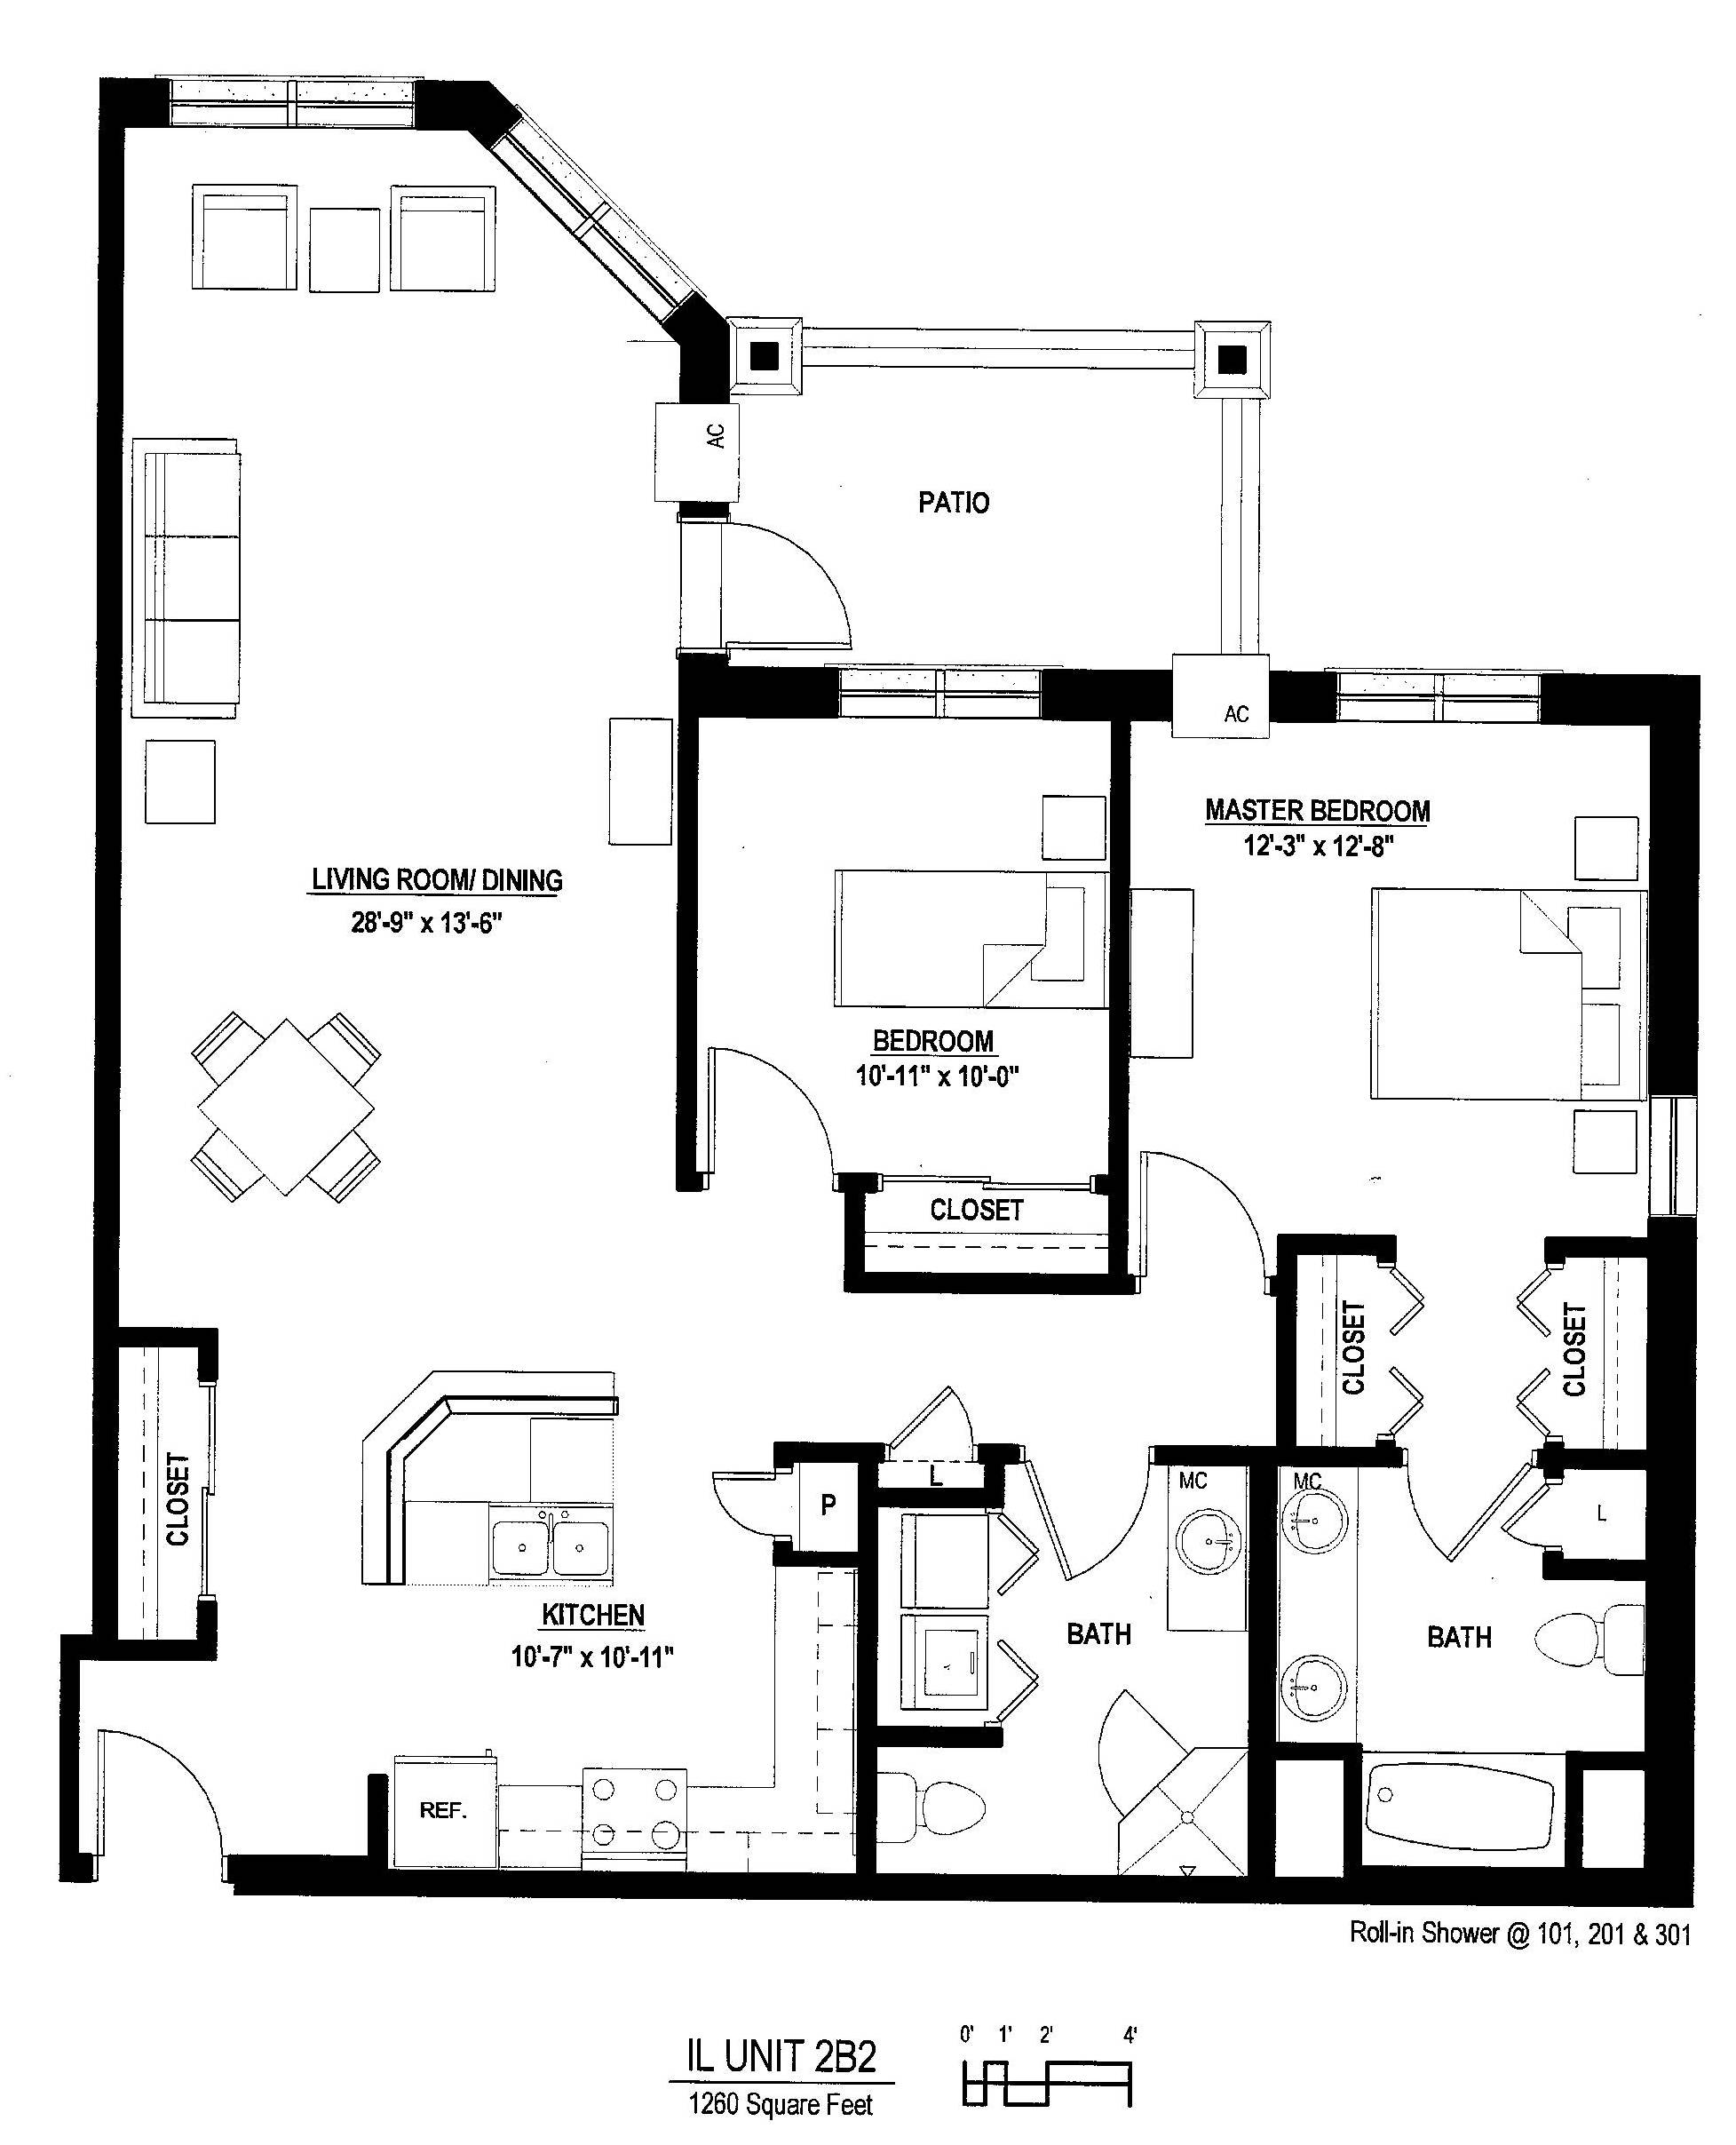 Luxury 2 bedroom apartment floor plan luxury 2 bedroom for 2 bedroom studio apartment plans